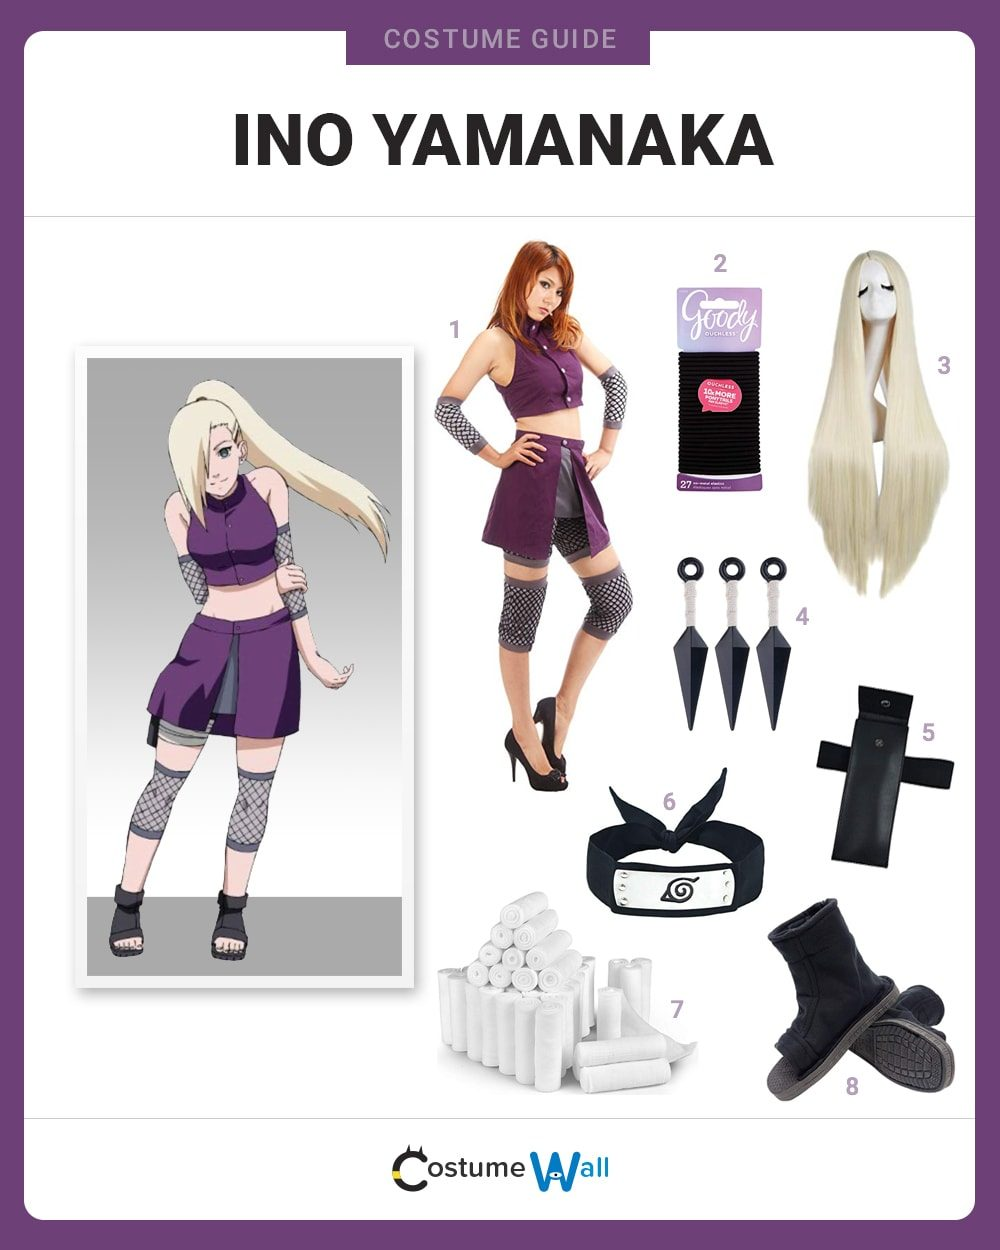 Dress Like Ino Yamanaka Costume Halloween And Cosplay Guides Want to discover art related to naruto_ino? dress like ino yamanaka costume